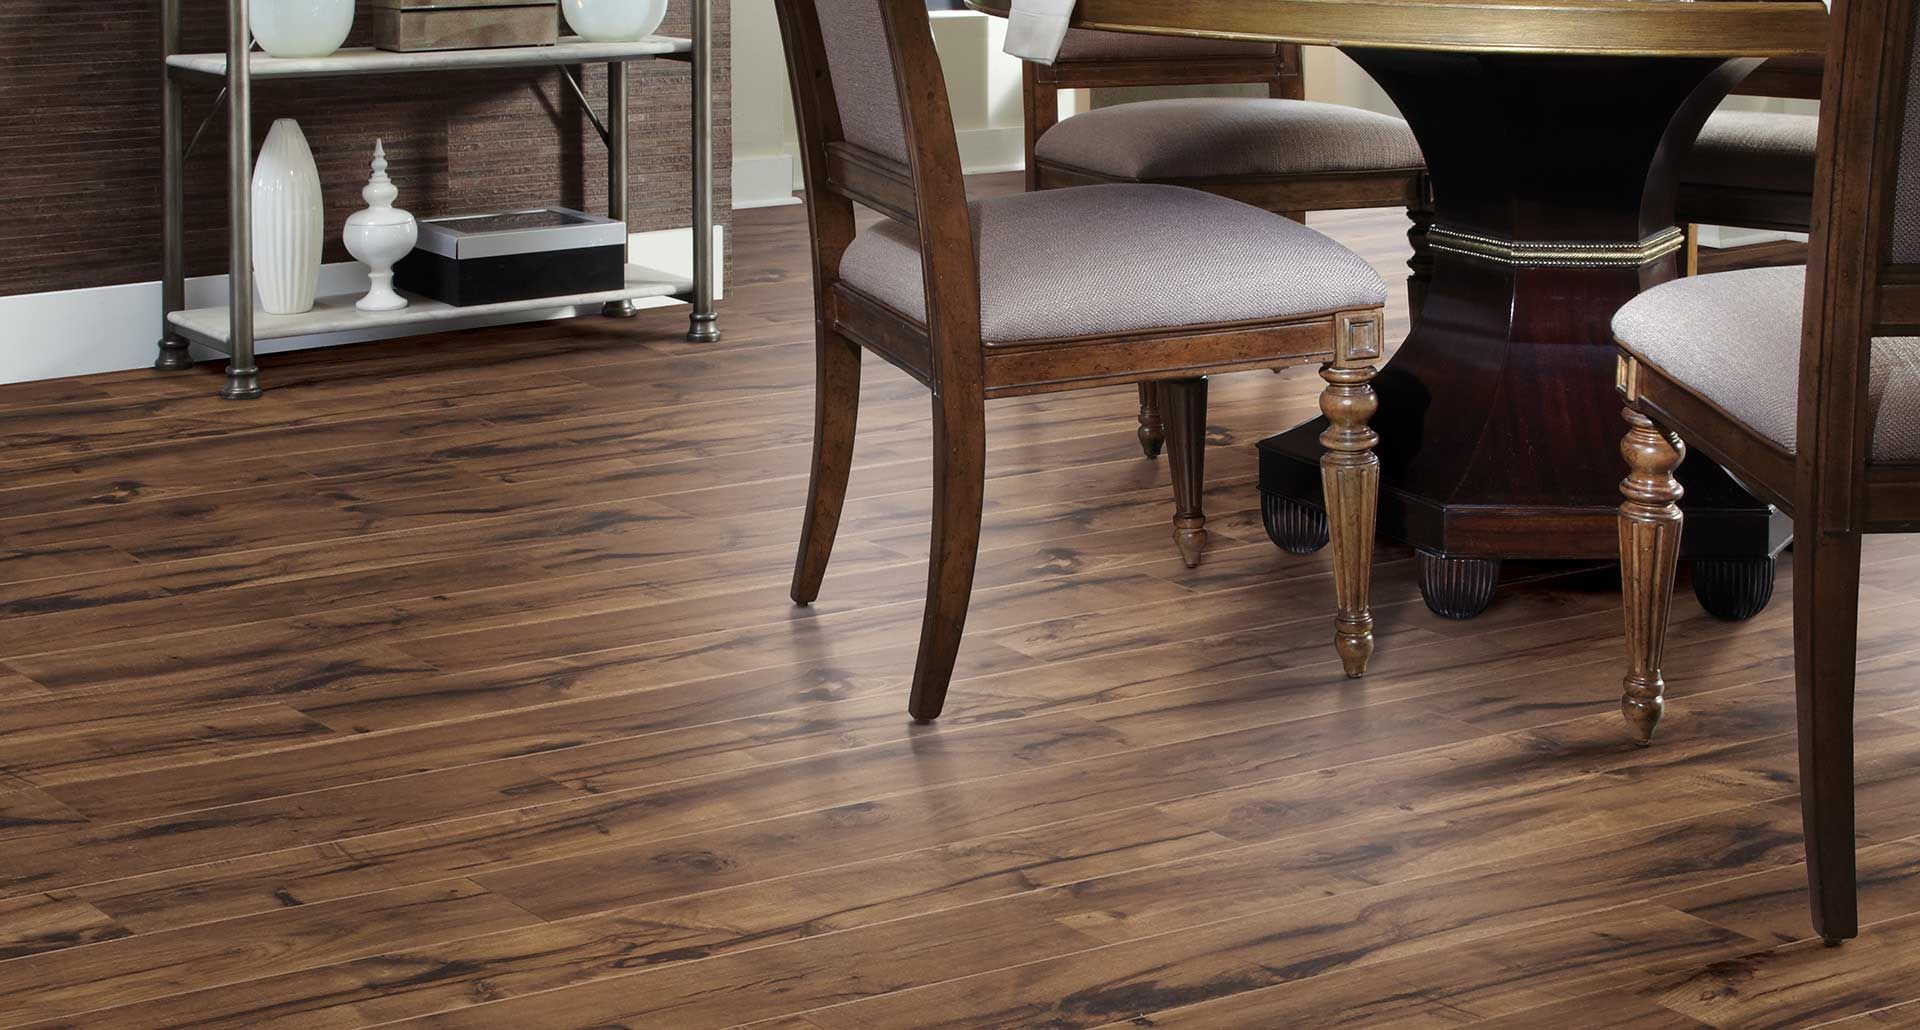 Vintage pewter oak pergo outlast laminate flooring pergo 174 flooring - Brown Hickory Wood Finish Single Strip Plank Laminate Flooring Easy To Install Pergo Warranty